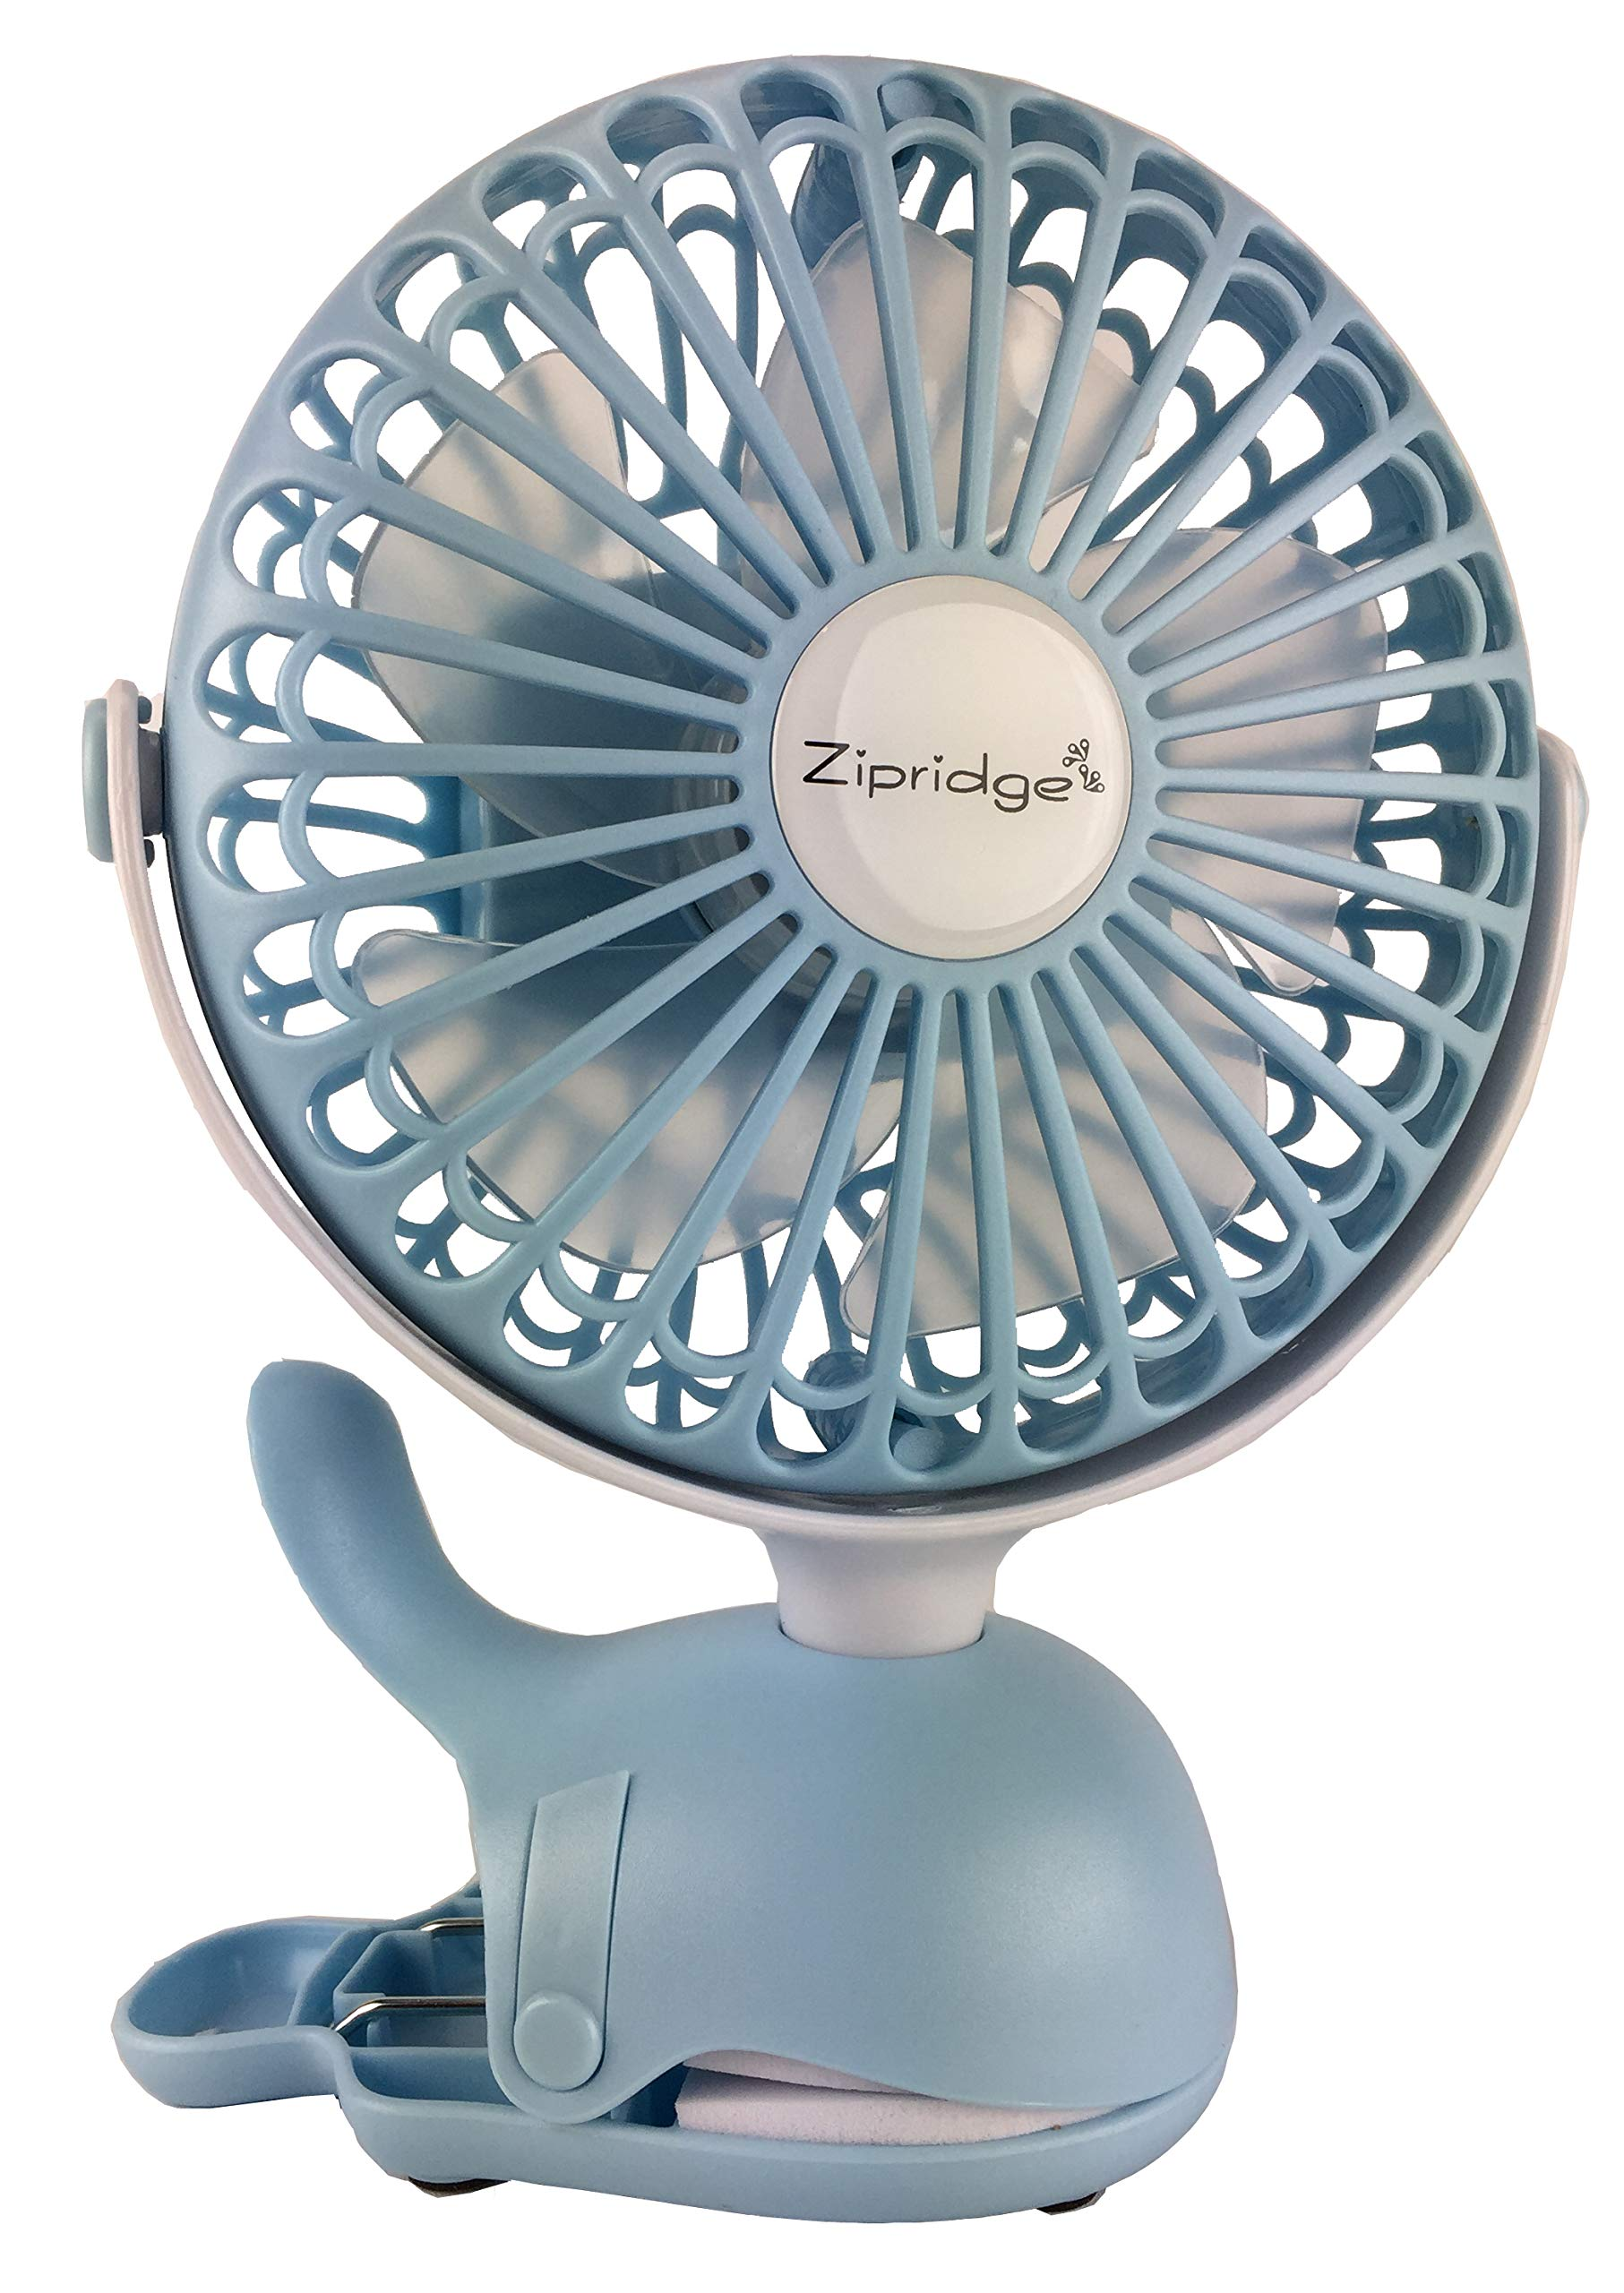 Clip On Baby Stroller Fan With Rechargeable Battery Perfect for Infant Crib, Golf Cart, Car Seat, Office Desk, Camping, or Workout in A Playful Whale Design, Blue by Zipridge (Image #1)